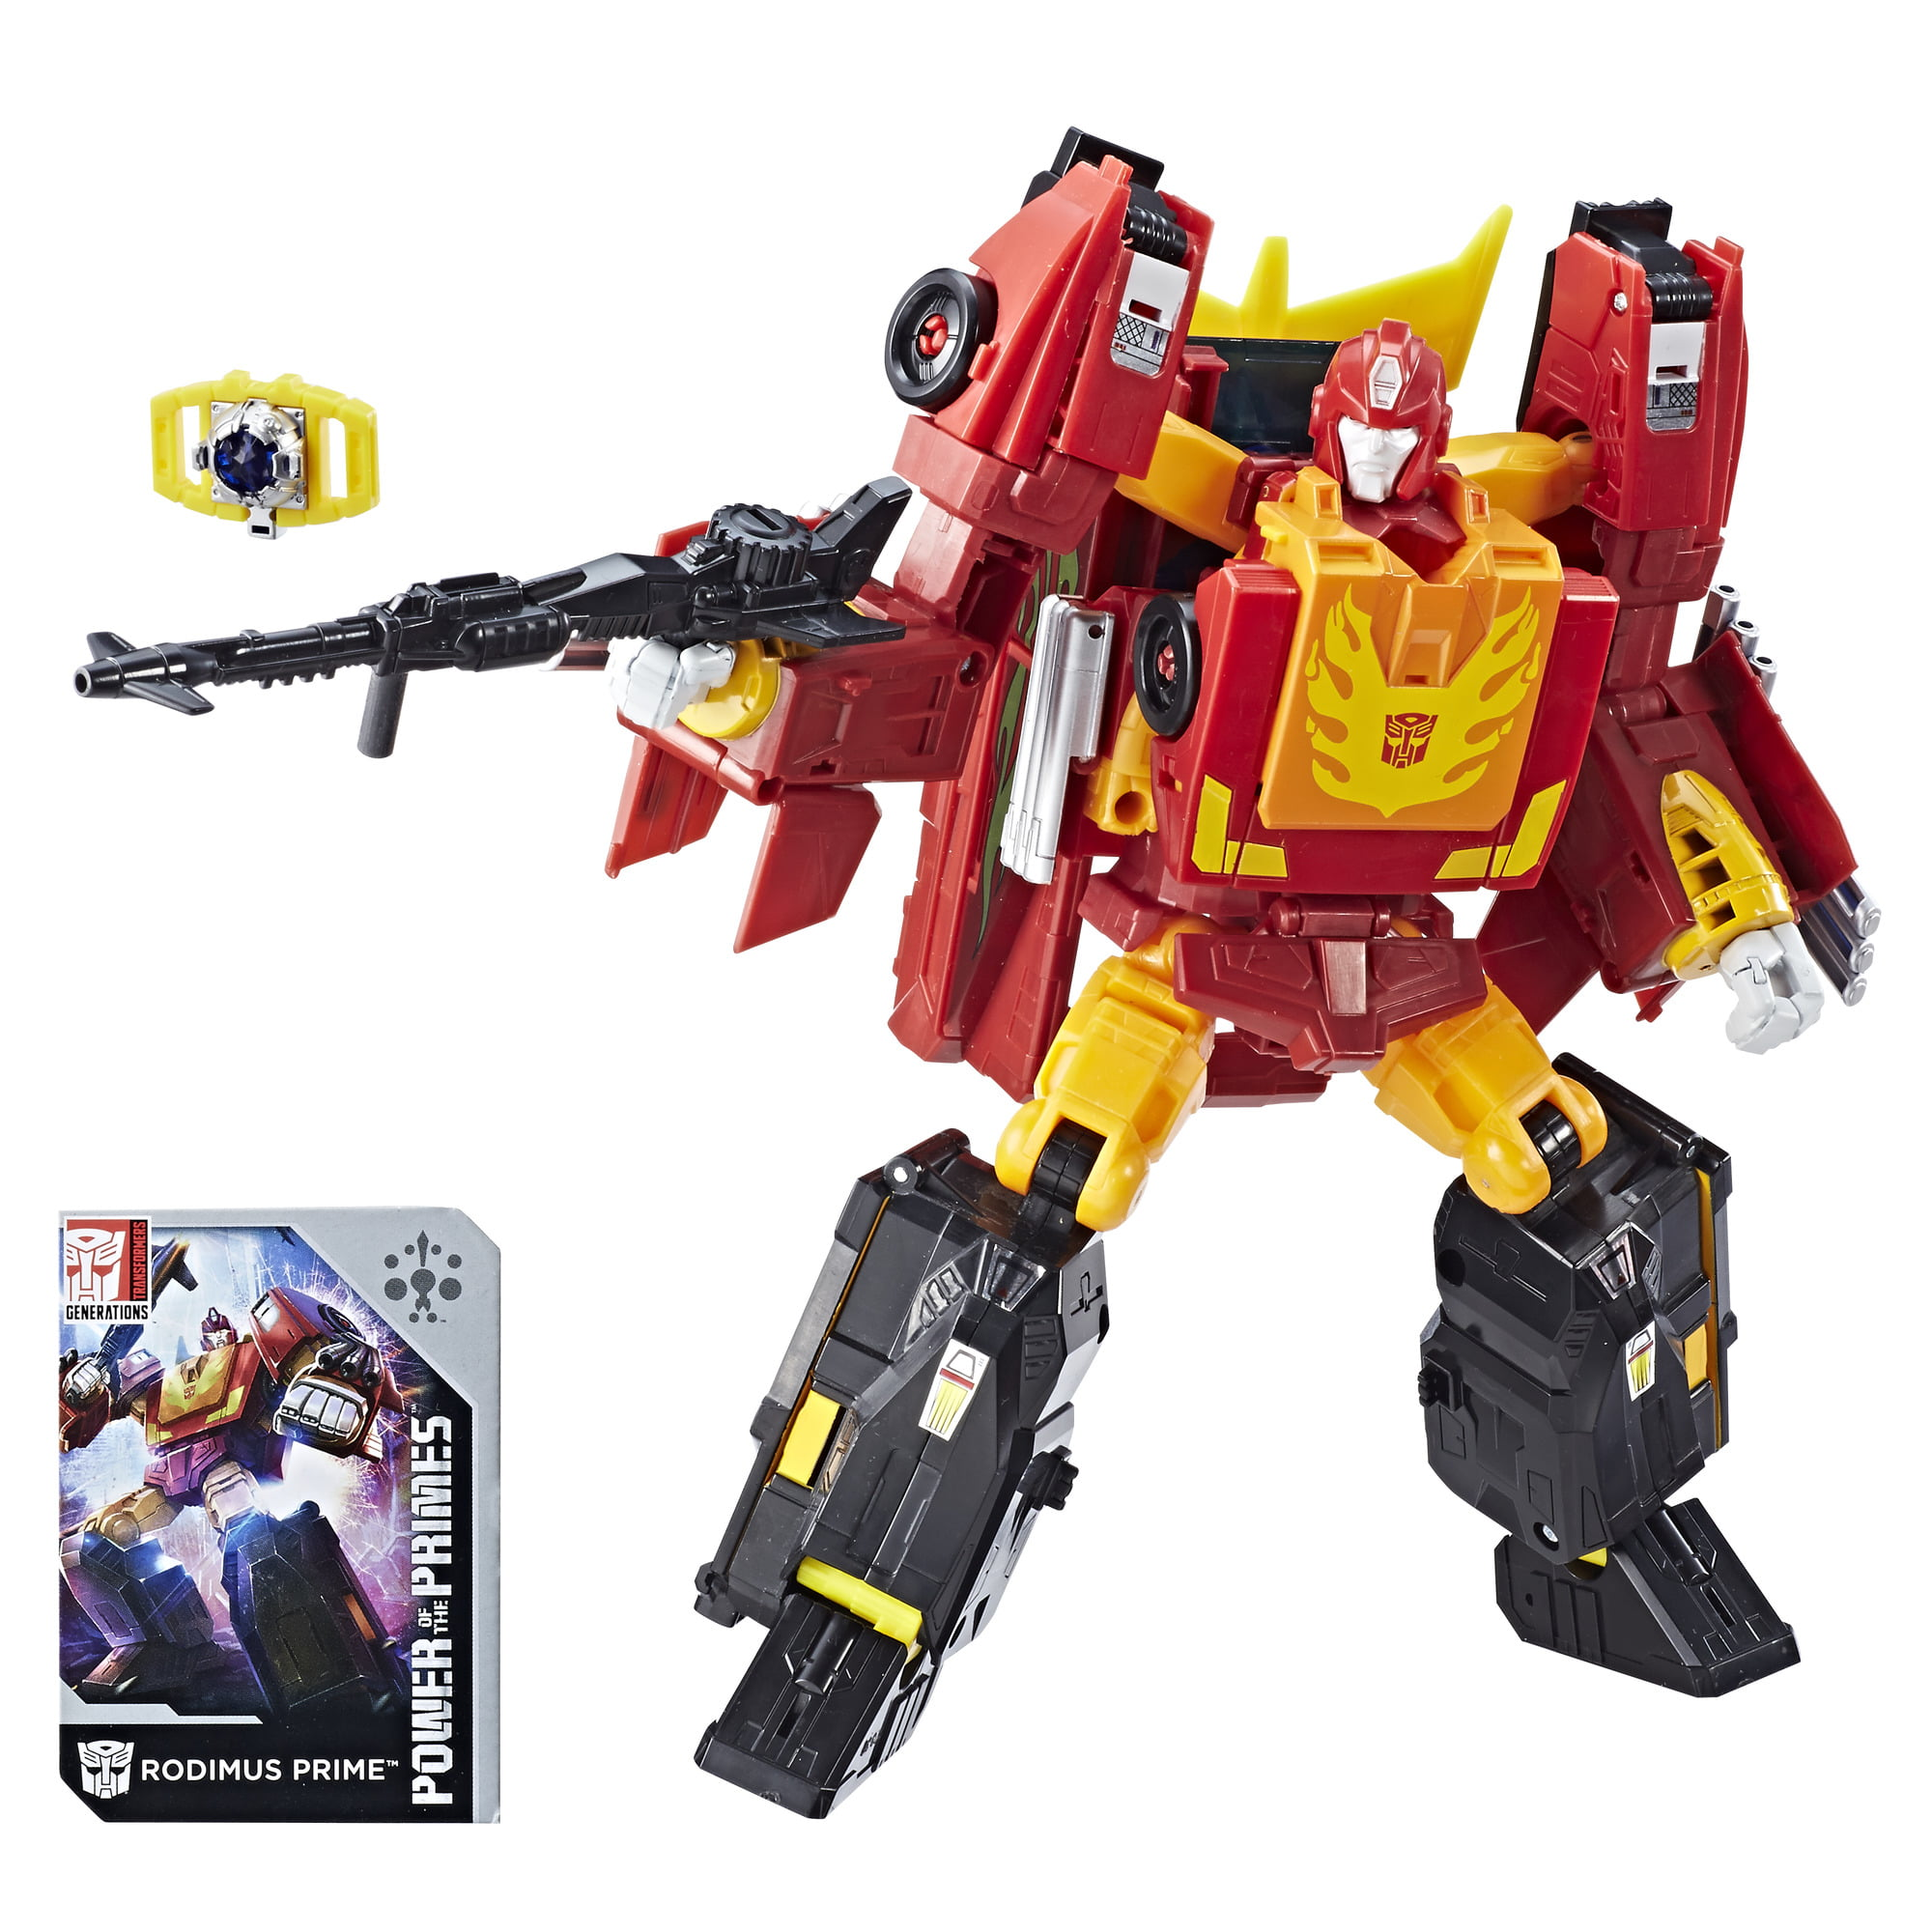 Transformers: Generations Power of the Primes Rodimus Prime by Hasbro Inc.